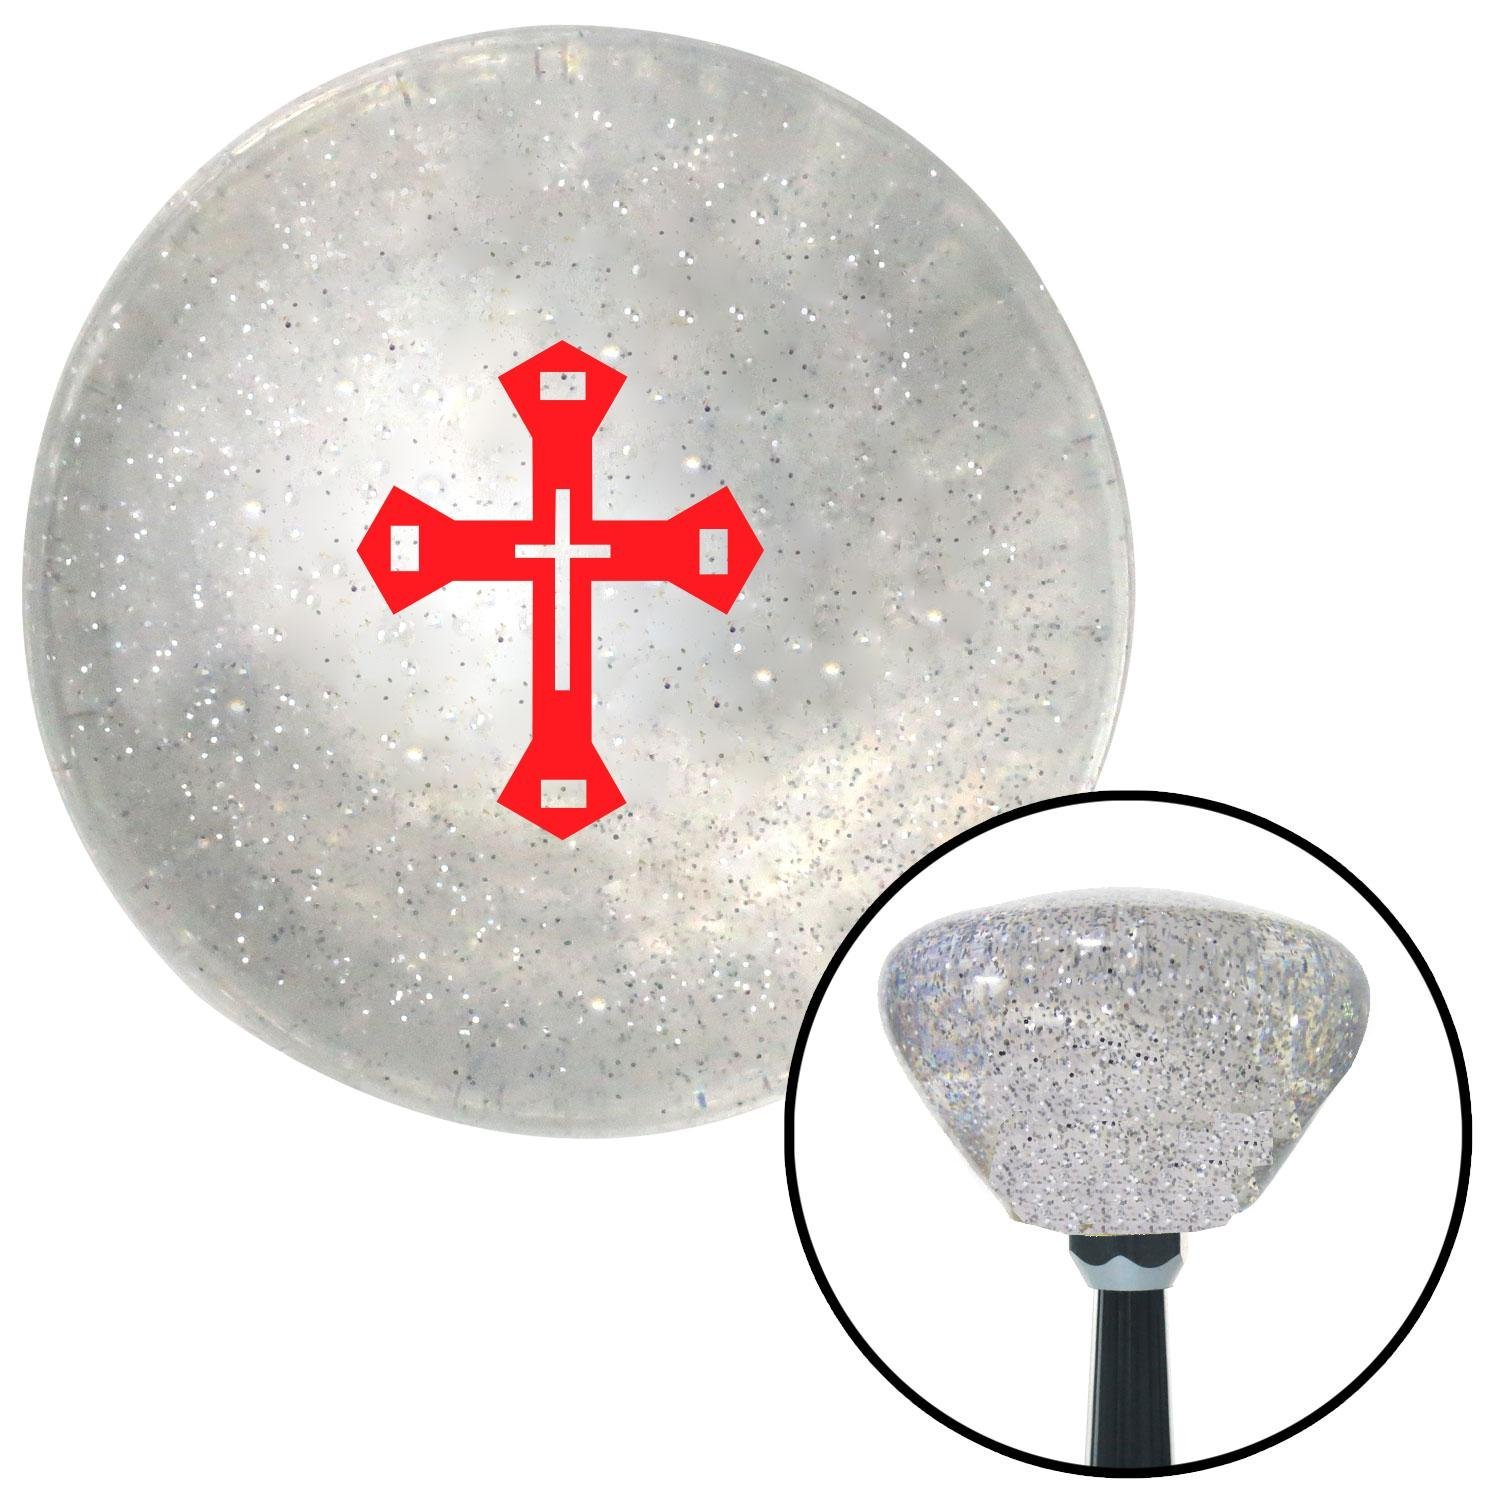 American Shifter 162538 Clear Retro Metal Flake Shift Knob with M16 x 1.5 Insert Red Budded Cross